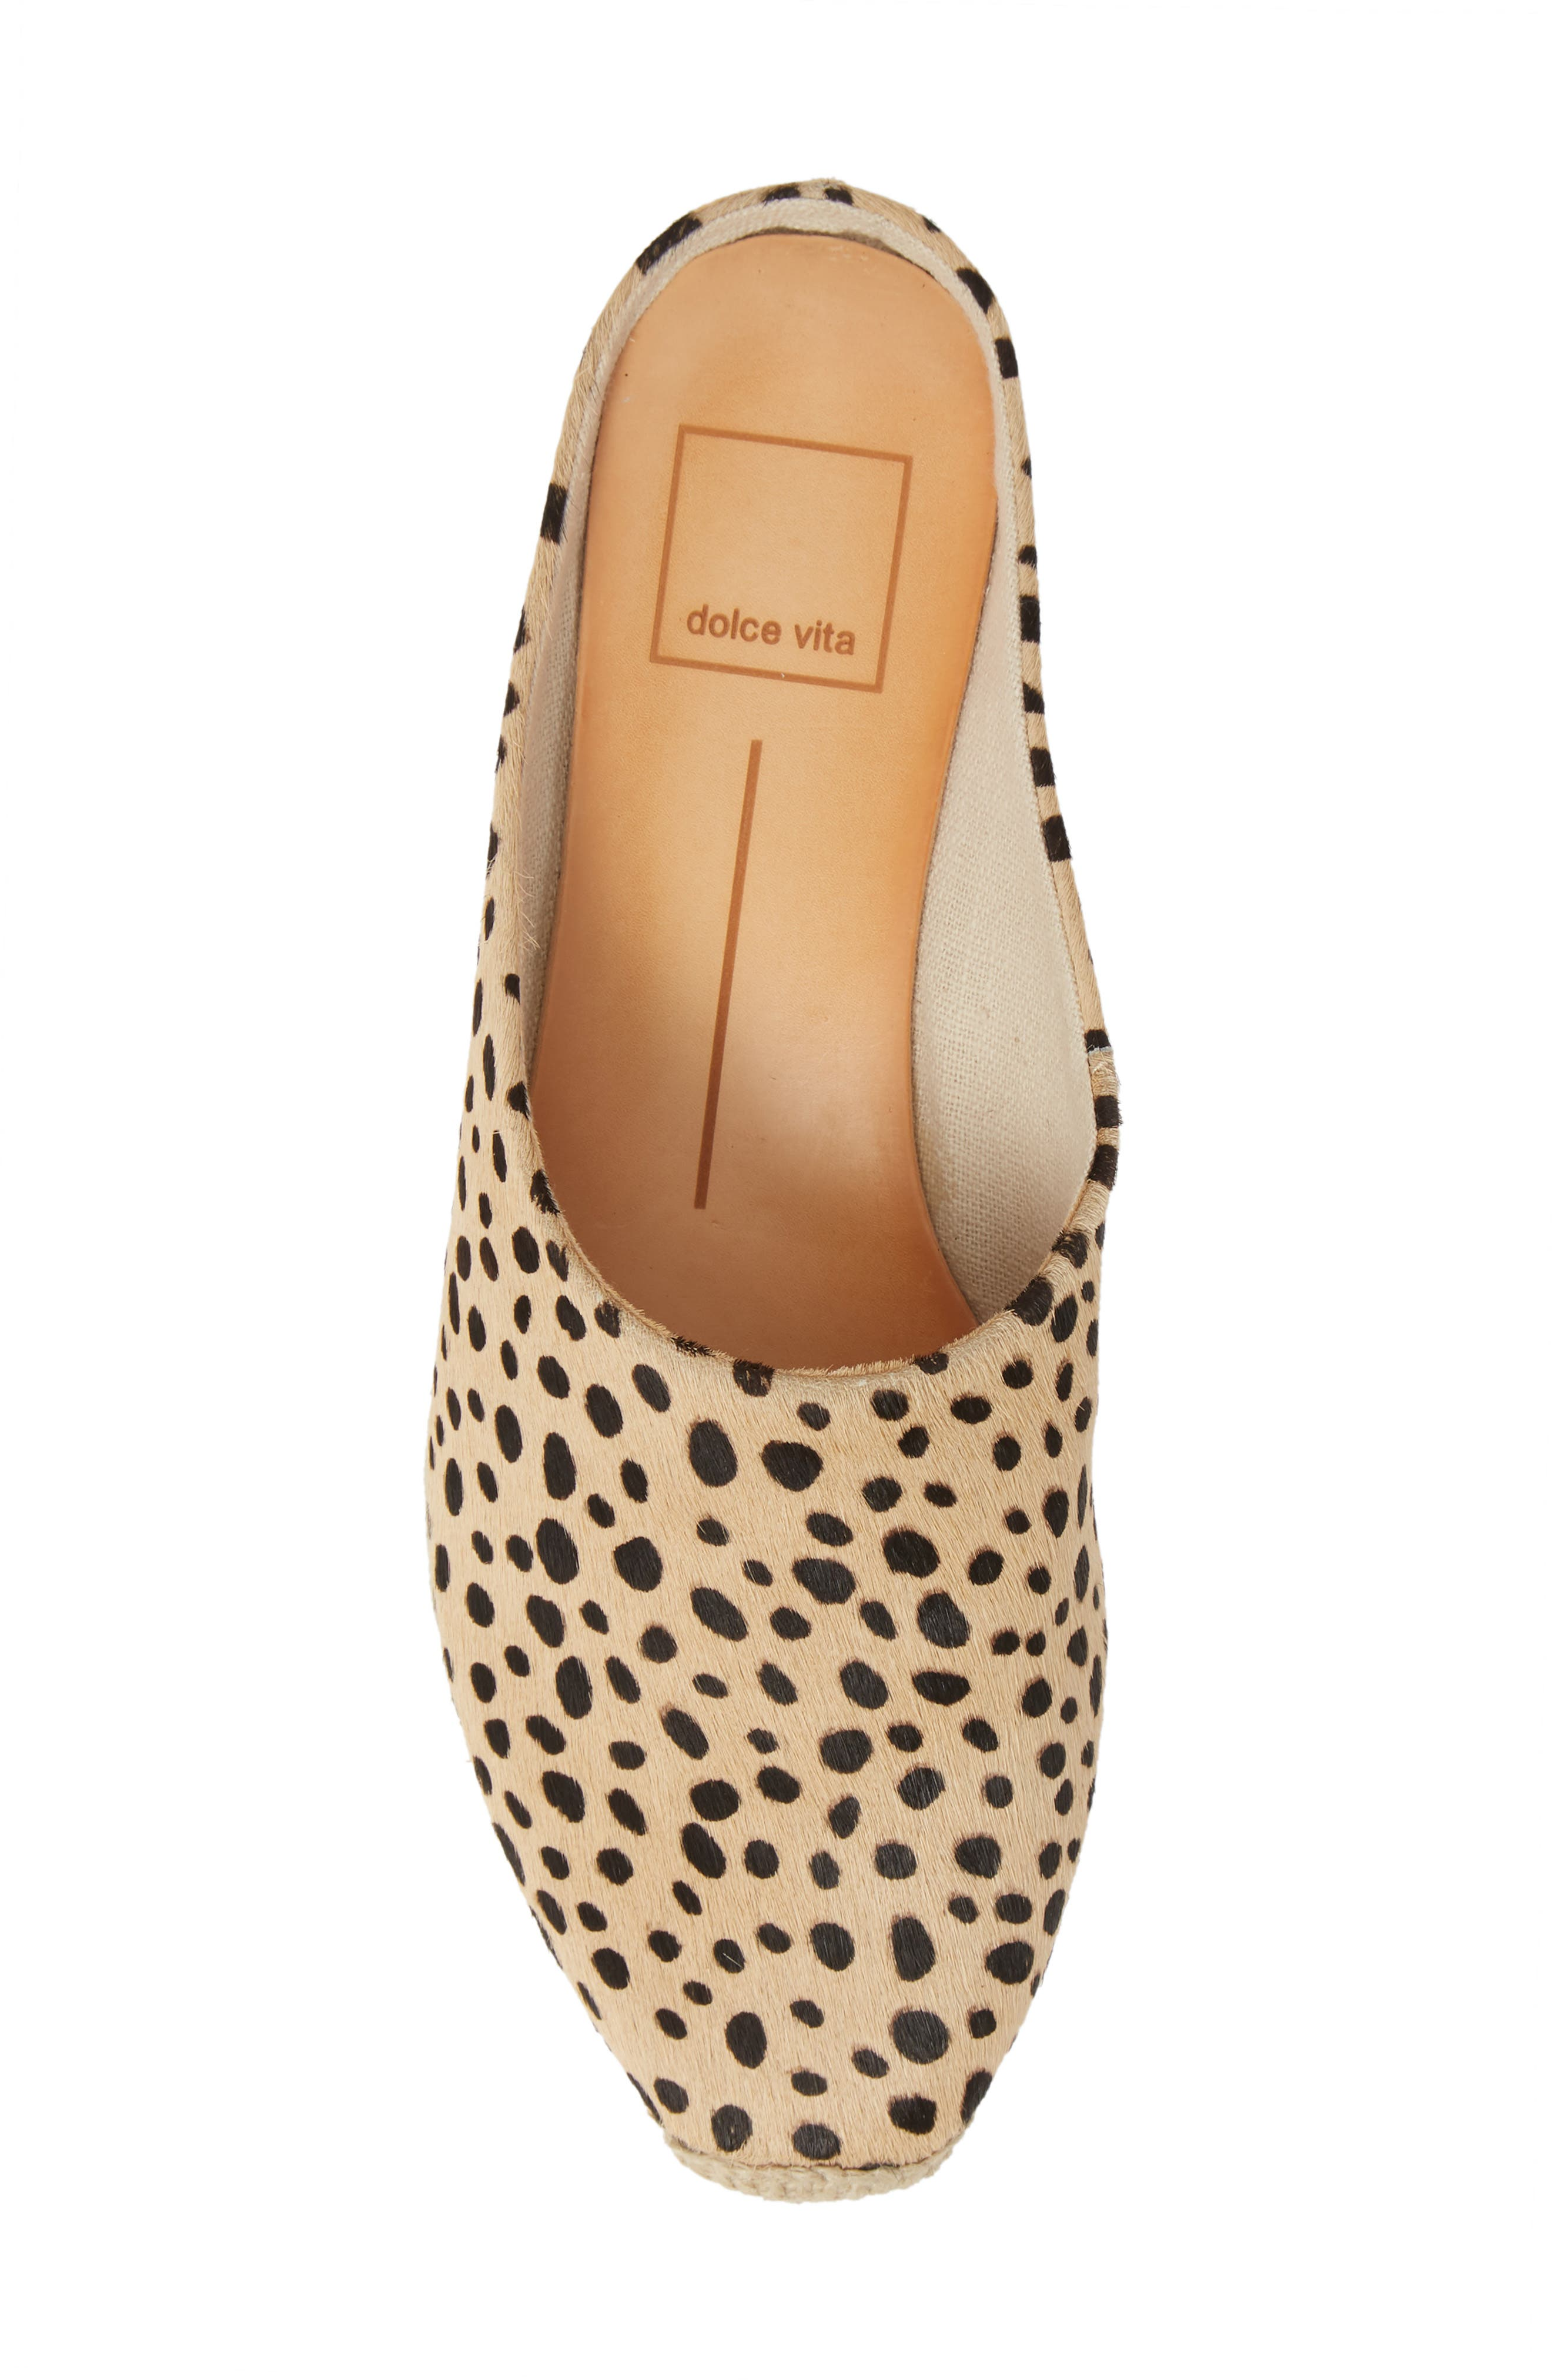 DOLCE VITA, Brandi Genuine Calf Hair Espadrille Mule, Alternate thumbnail 5, color, LEOPARD PRINT CALF HAIR